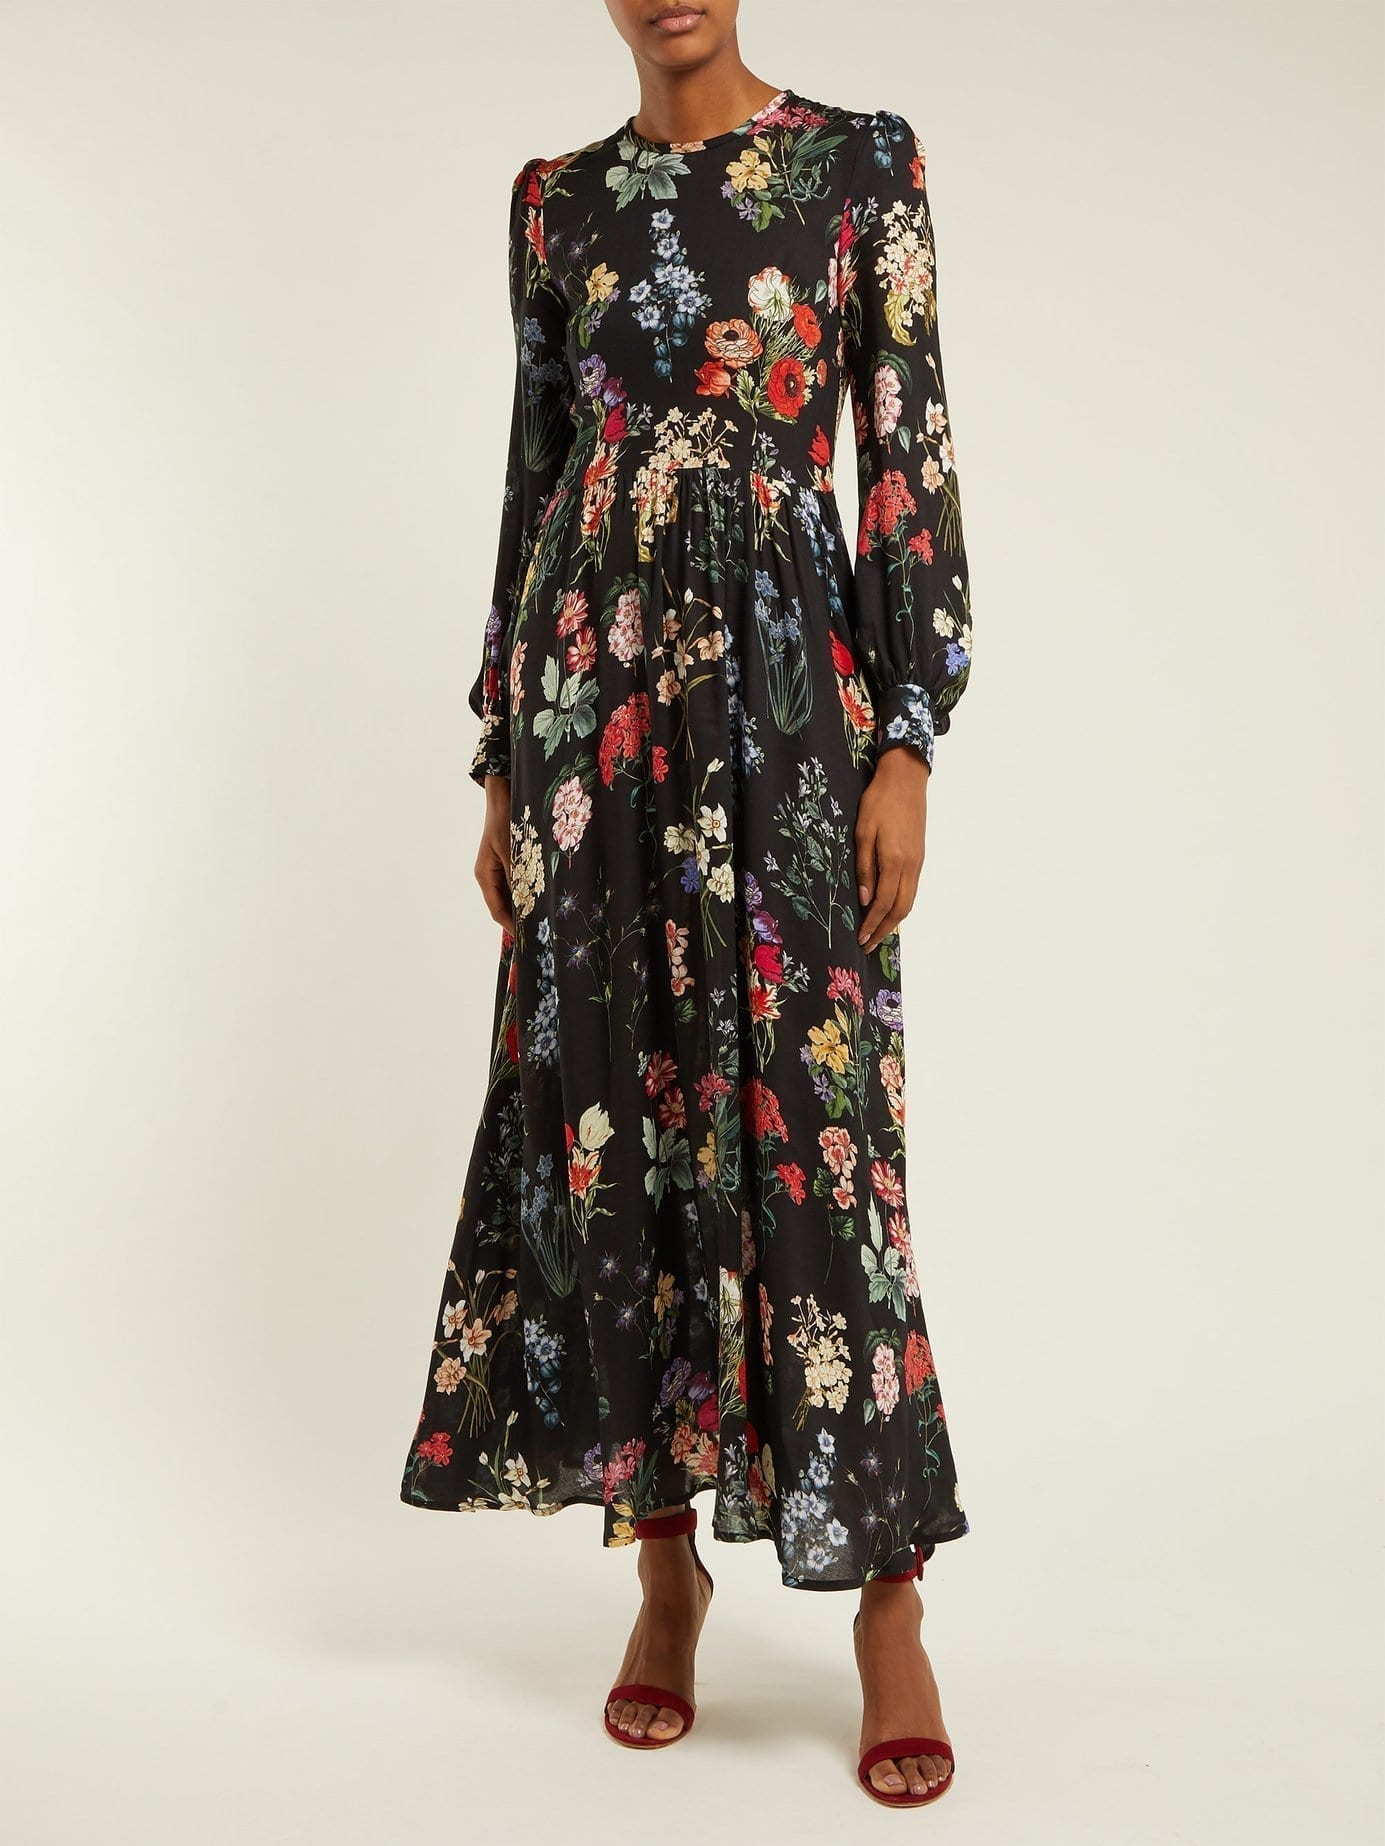 GOAT Garden Black / Floral Printed Dress